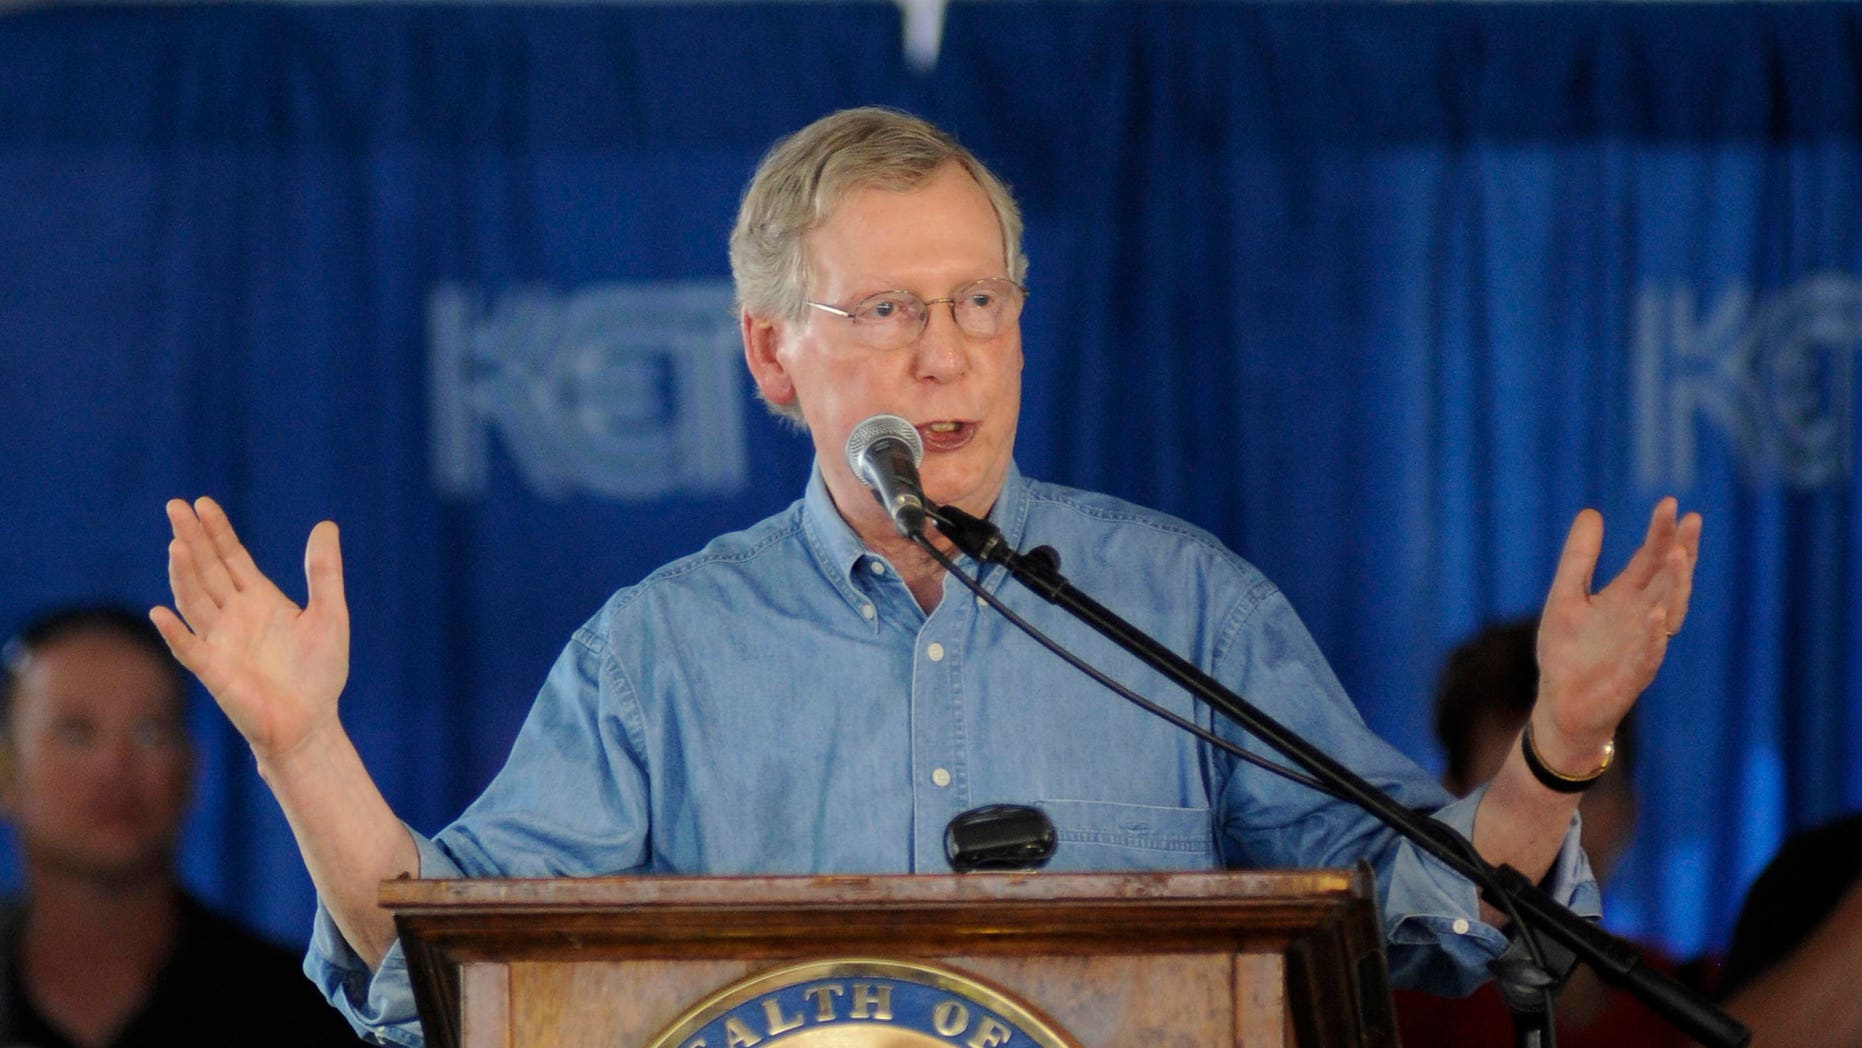 FILE: Aug. 3, 2013: Senate Minority Leader Mitch McConnell of Ky., during the 133rd Annual Fancy Farm Picnic in Fancy Farm, Ky.